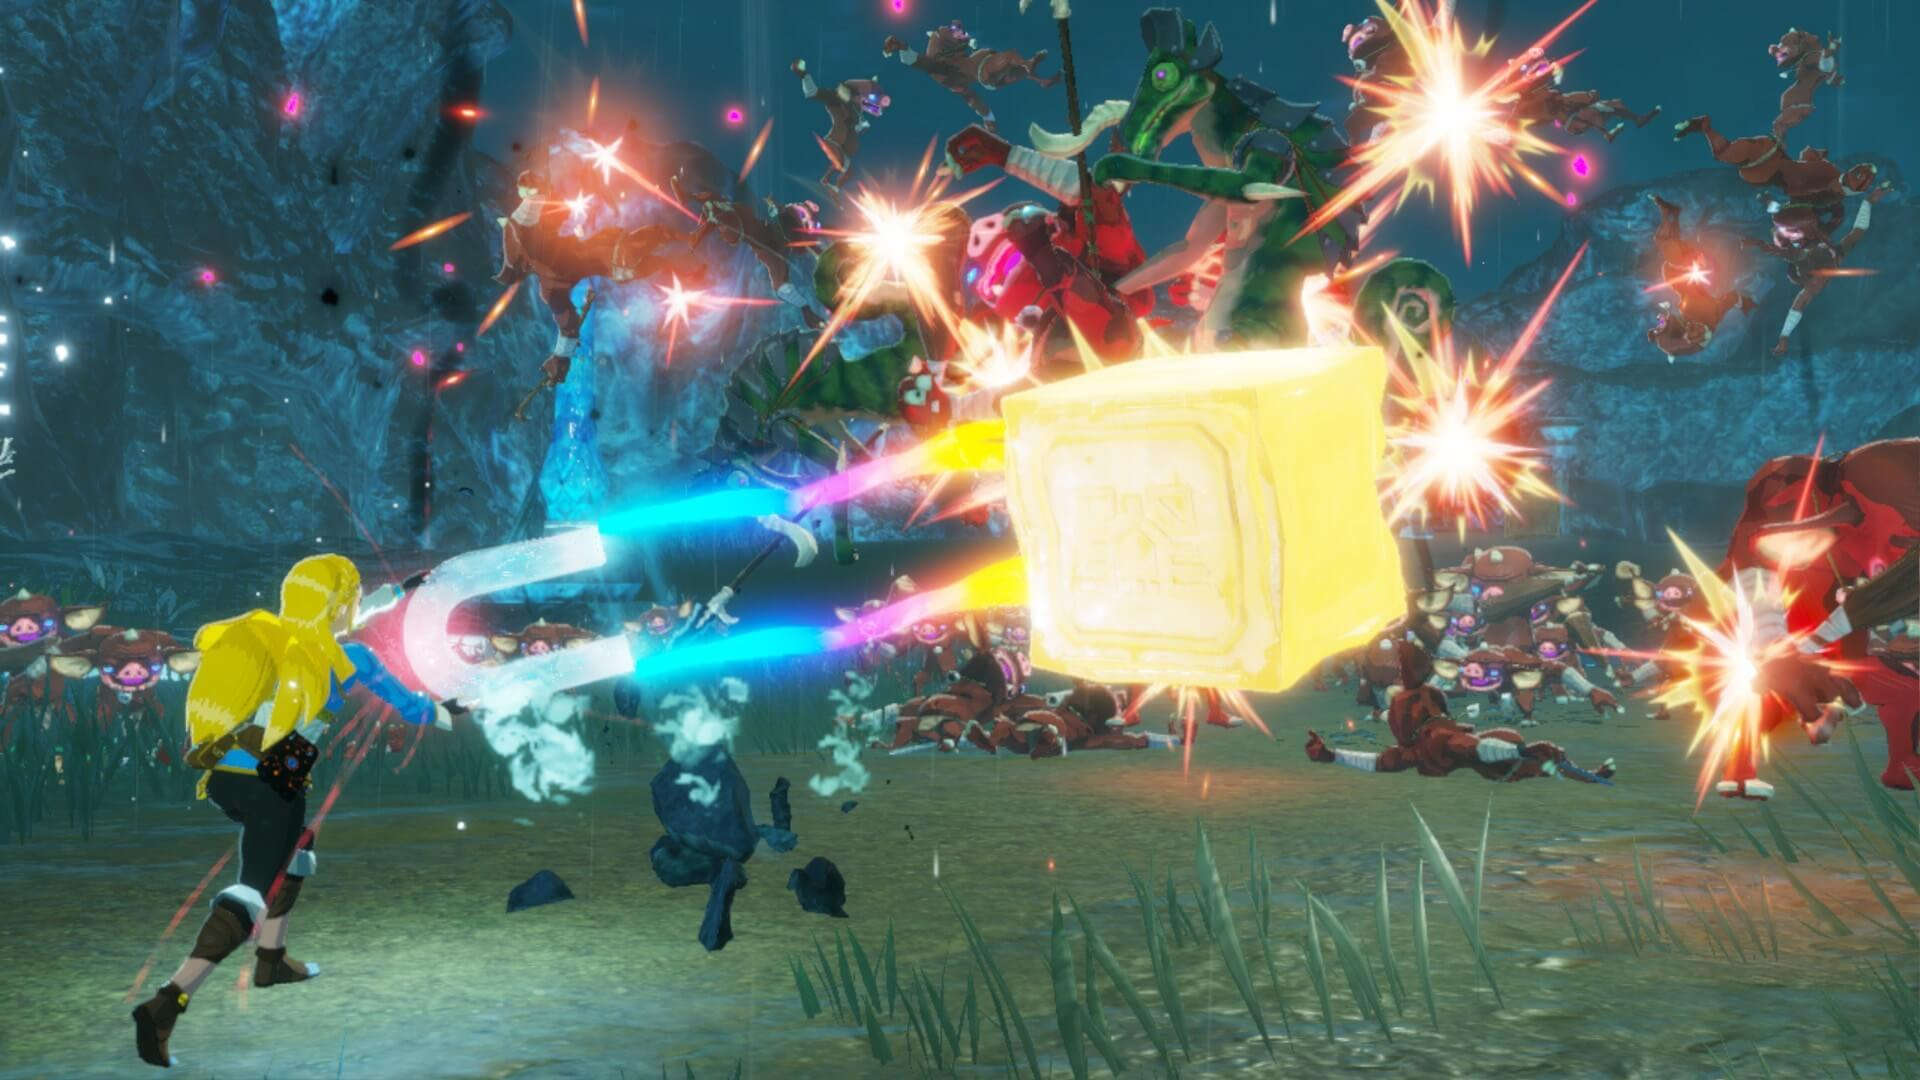 Hyrule Warriors: Age of Calamity Sells 3 Million Copies in First Week